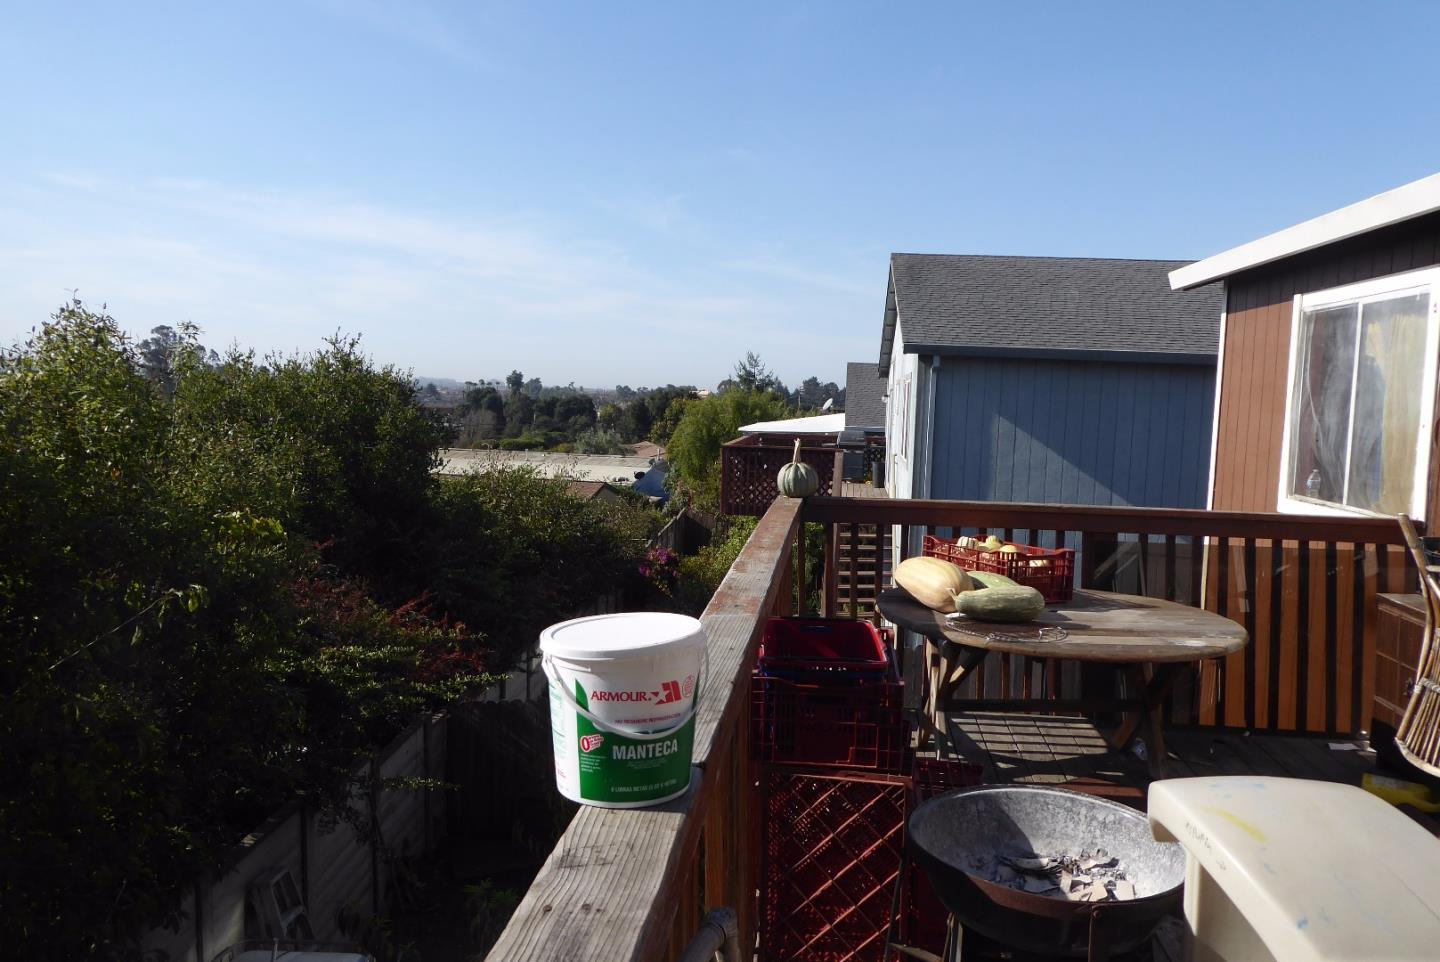 Additional photo for property listing at 205 Kimberly Lane 205 Kimberly Lane Watsonville, California 95076 United States